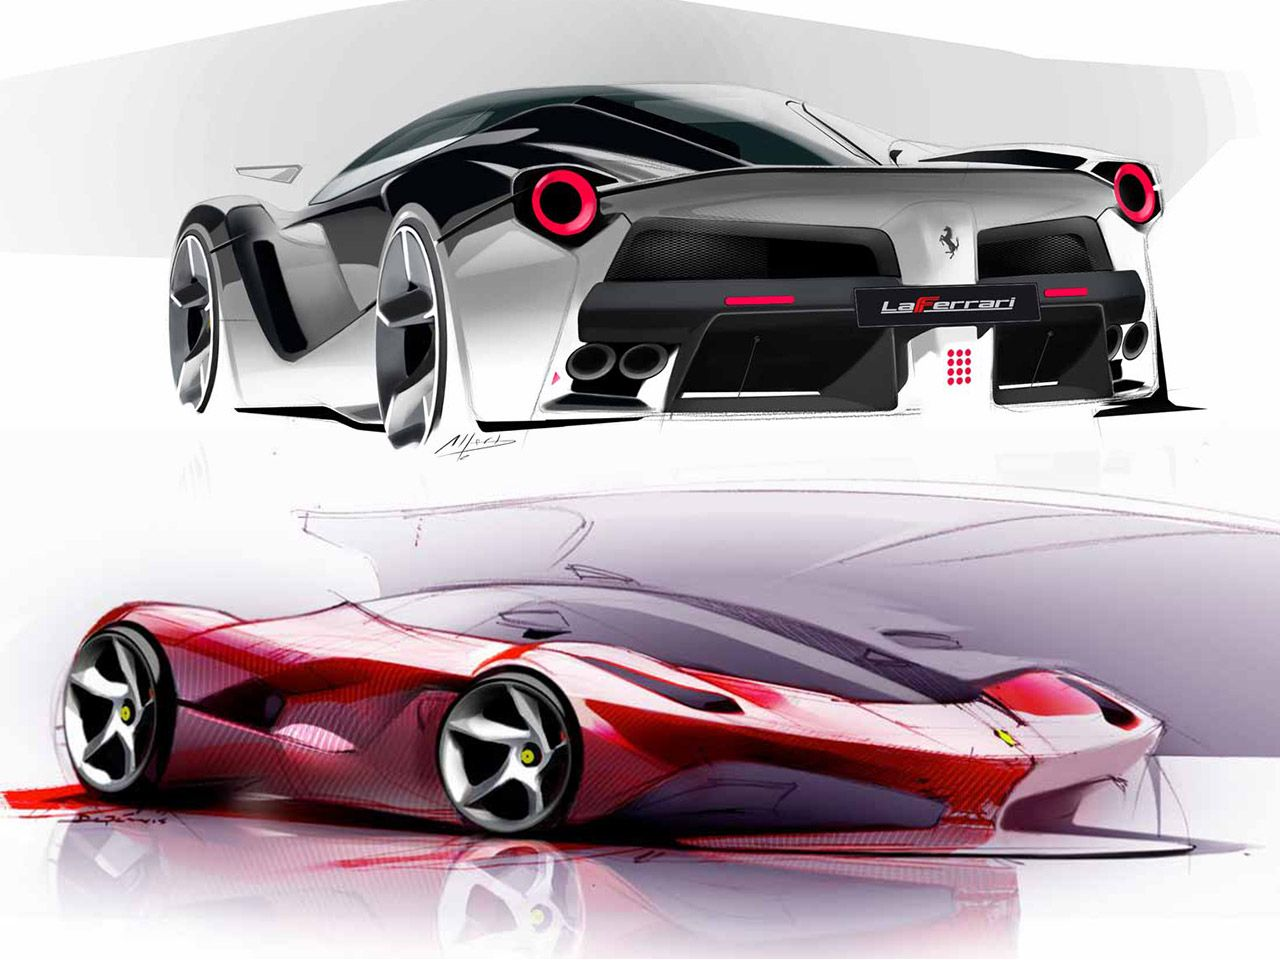 http://www.carbodydesign.com/media/2013/03/LaFerrari-Design-Sketches ...